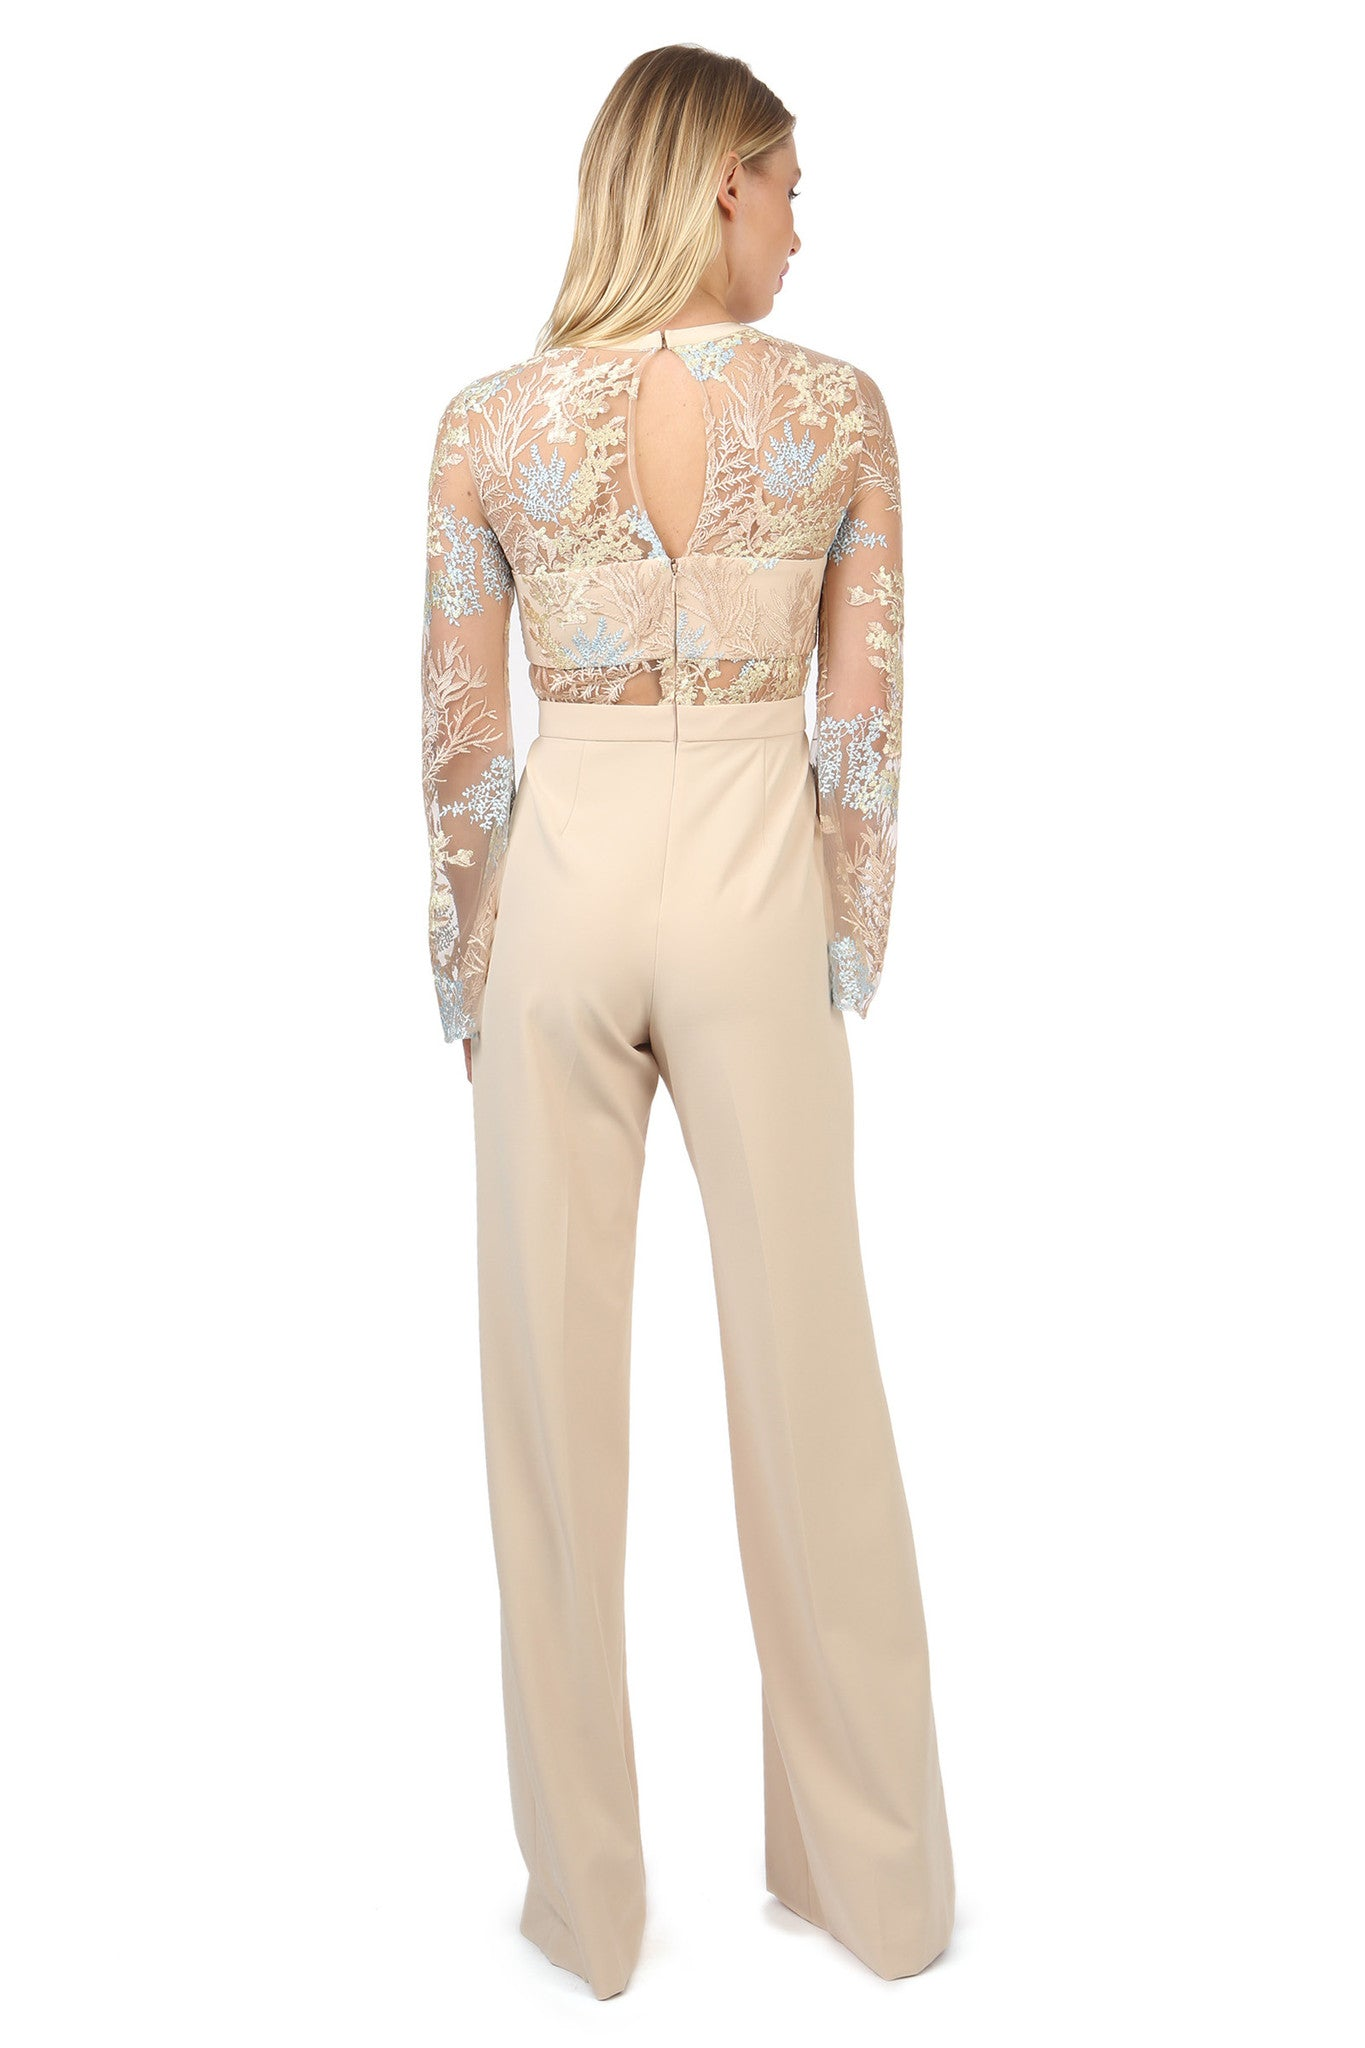 Jay Godfrey Sand Lace Jumpsuit - Back View